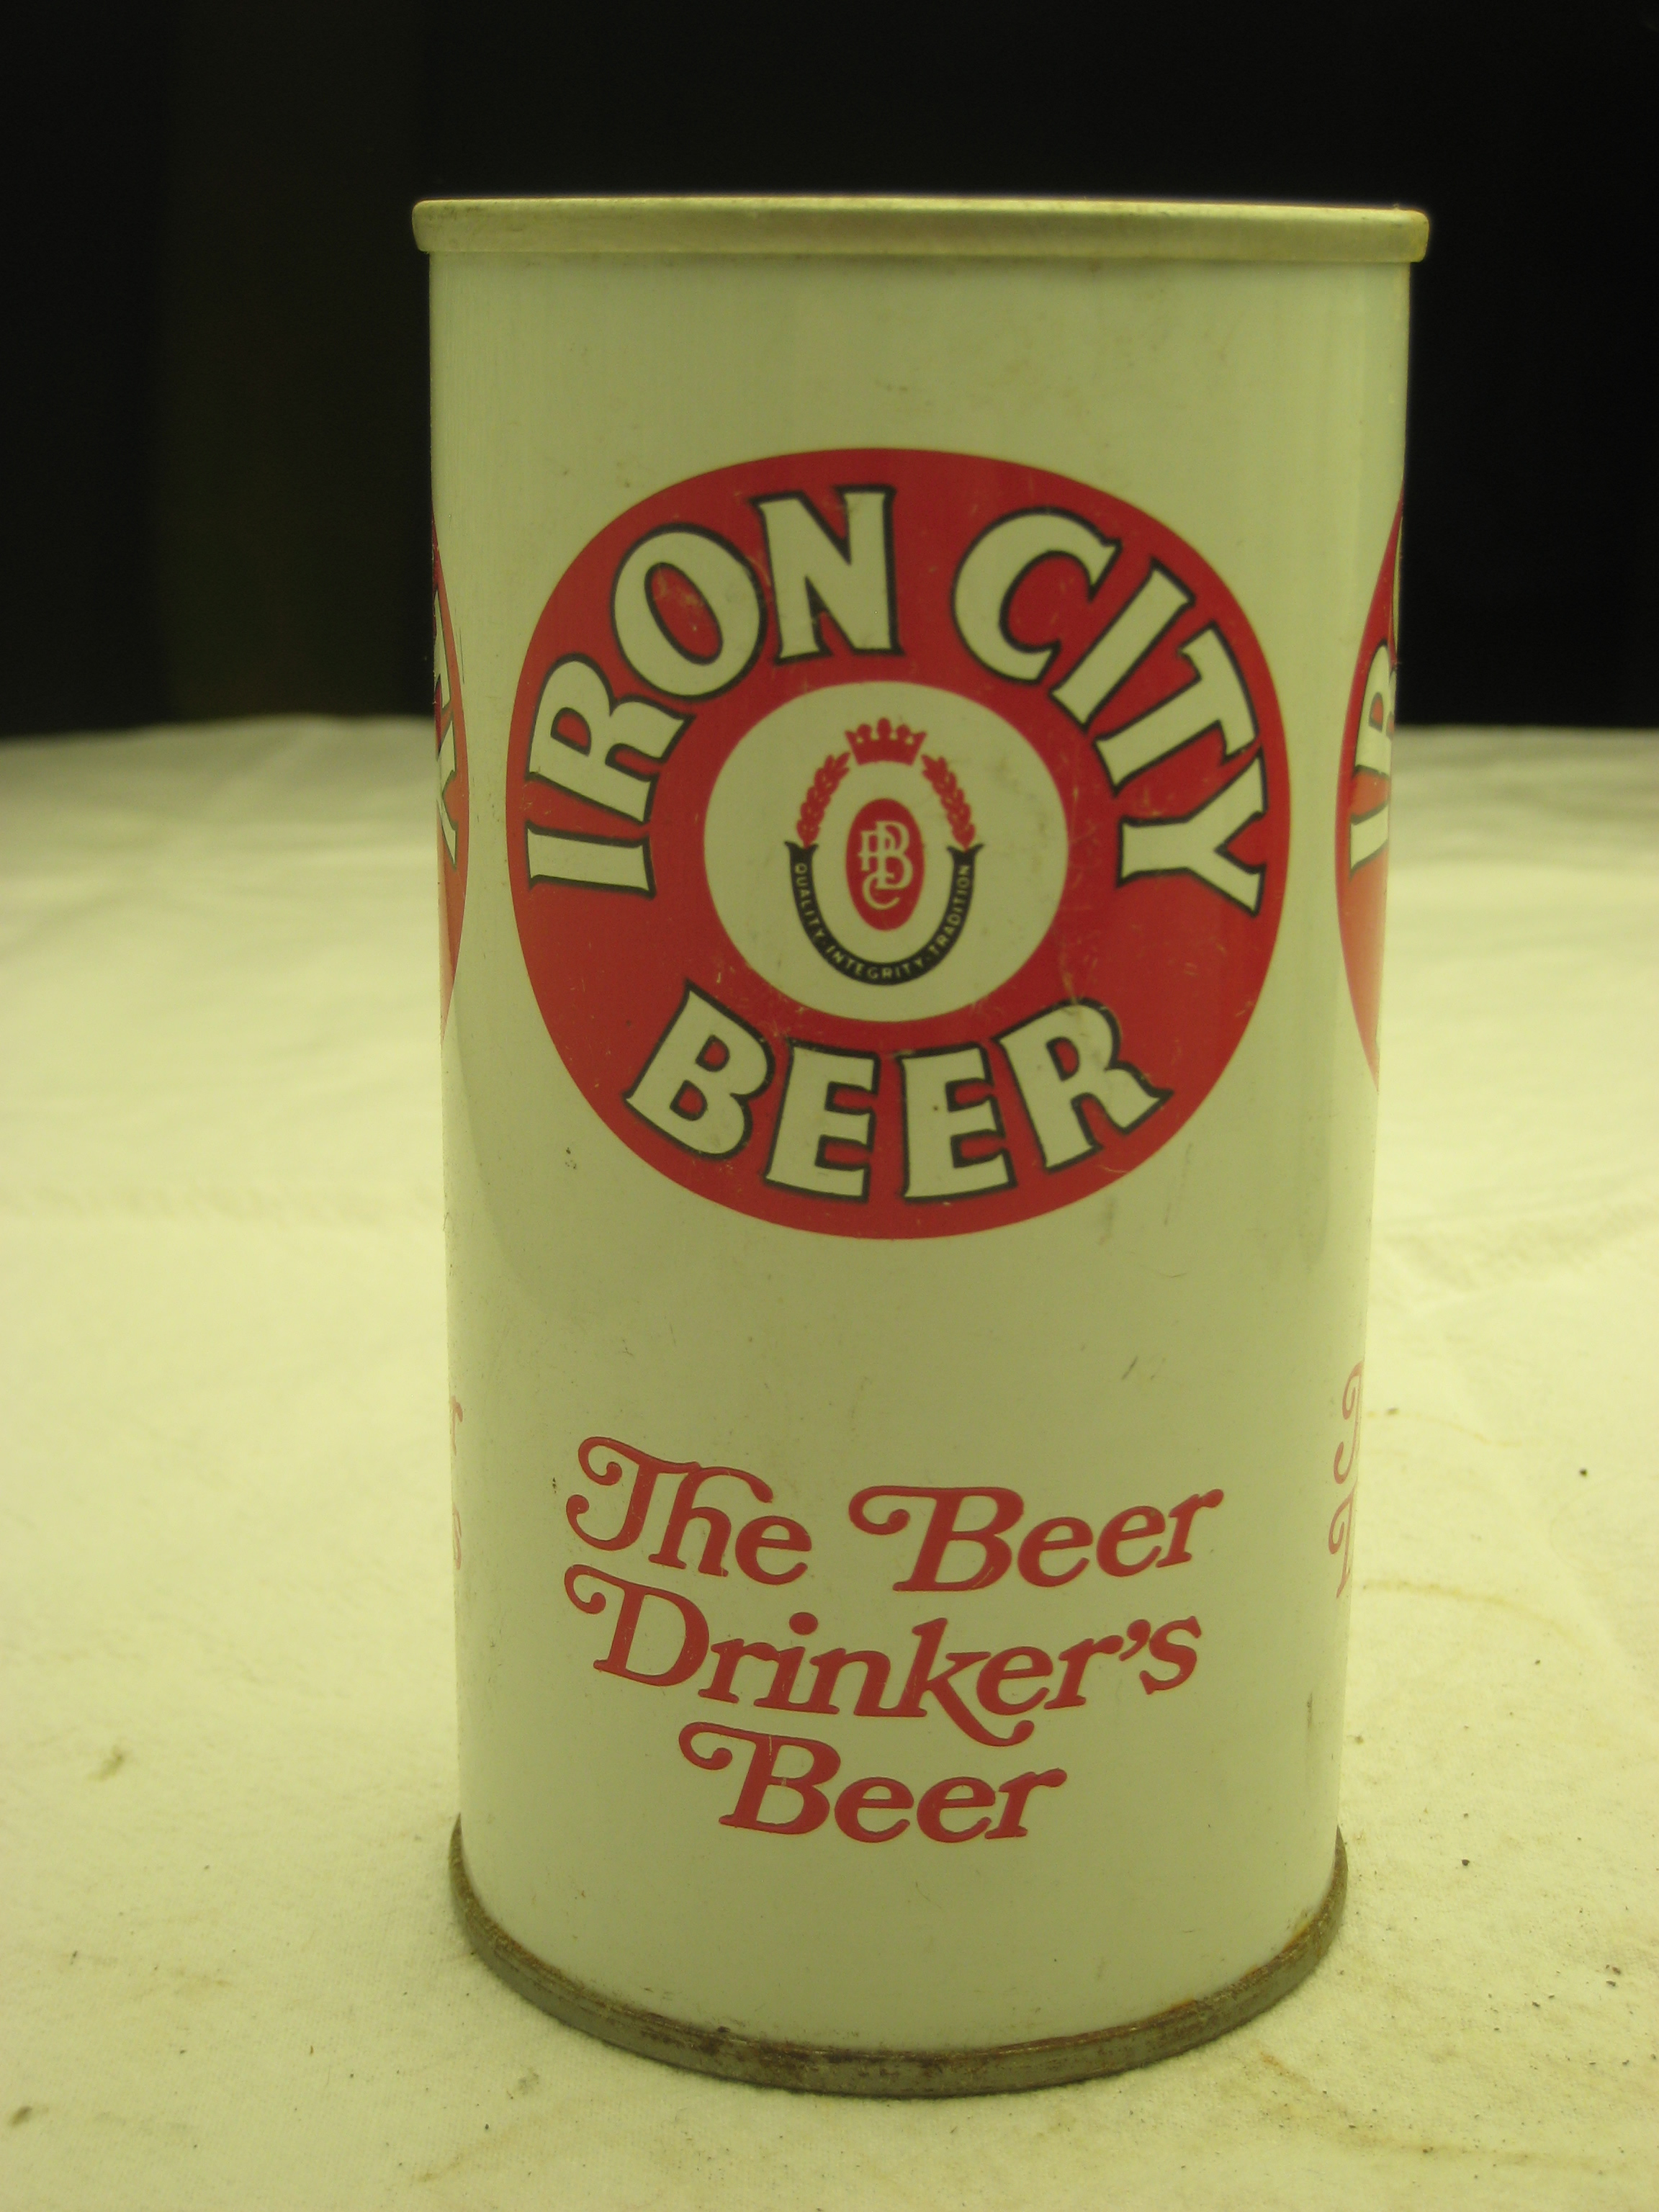 Vintage Iron City Beer can